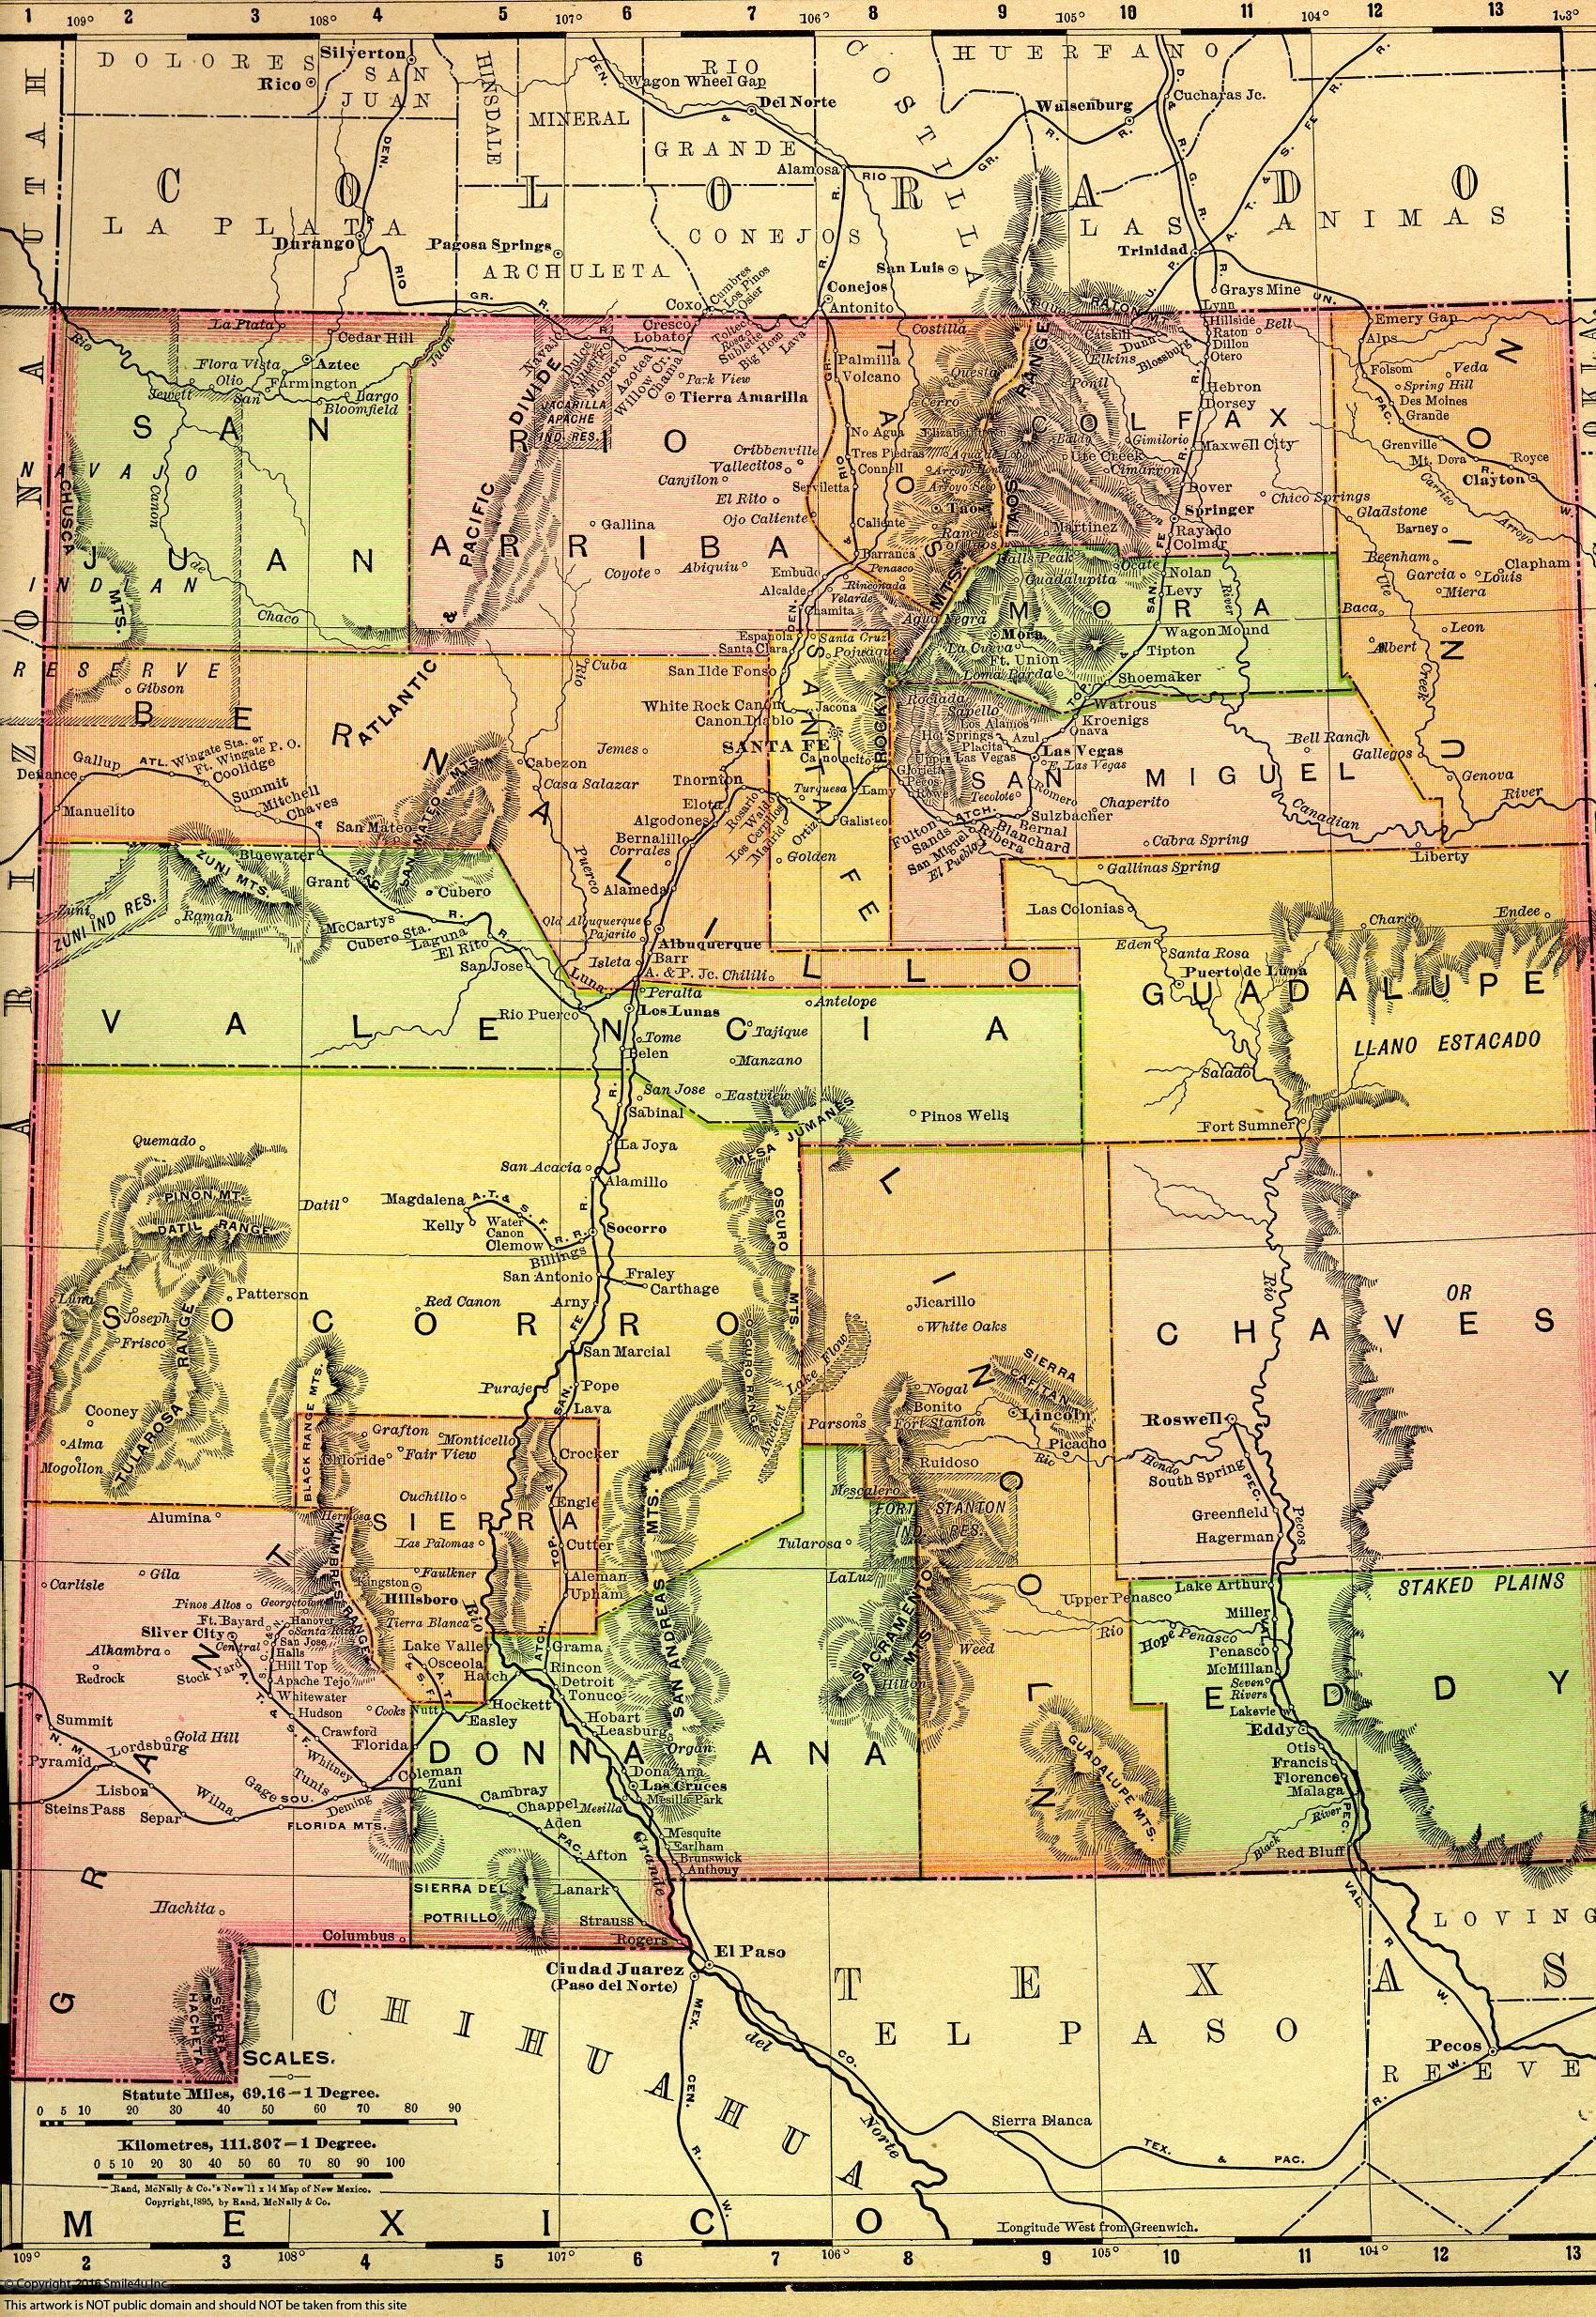 592995_watermarked_New Mexico State Map in 1895.jpg